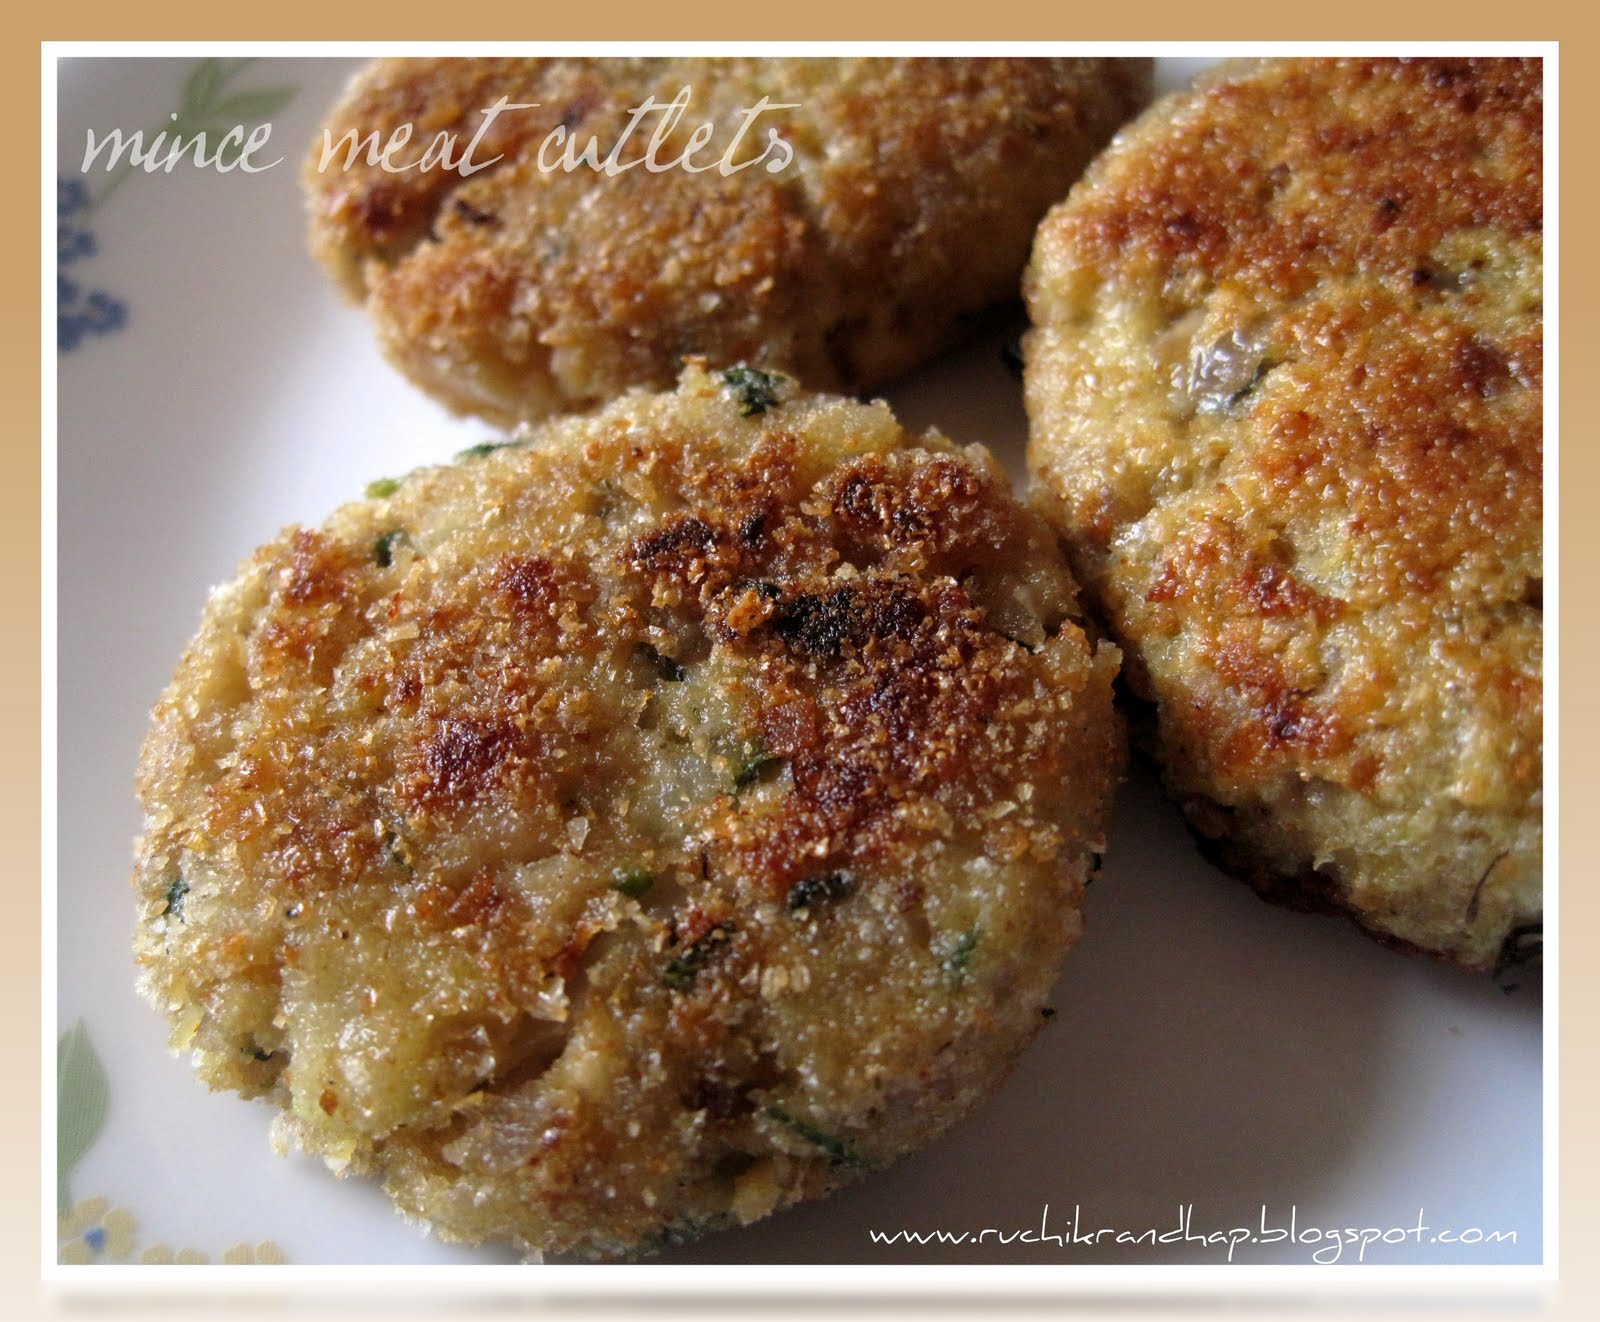 Mince meat cutlets ruchik randhap mince meat cutlets forumfinder Choice Image